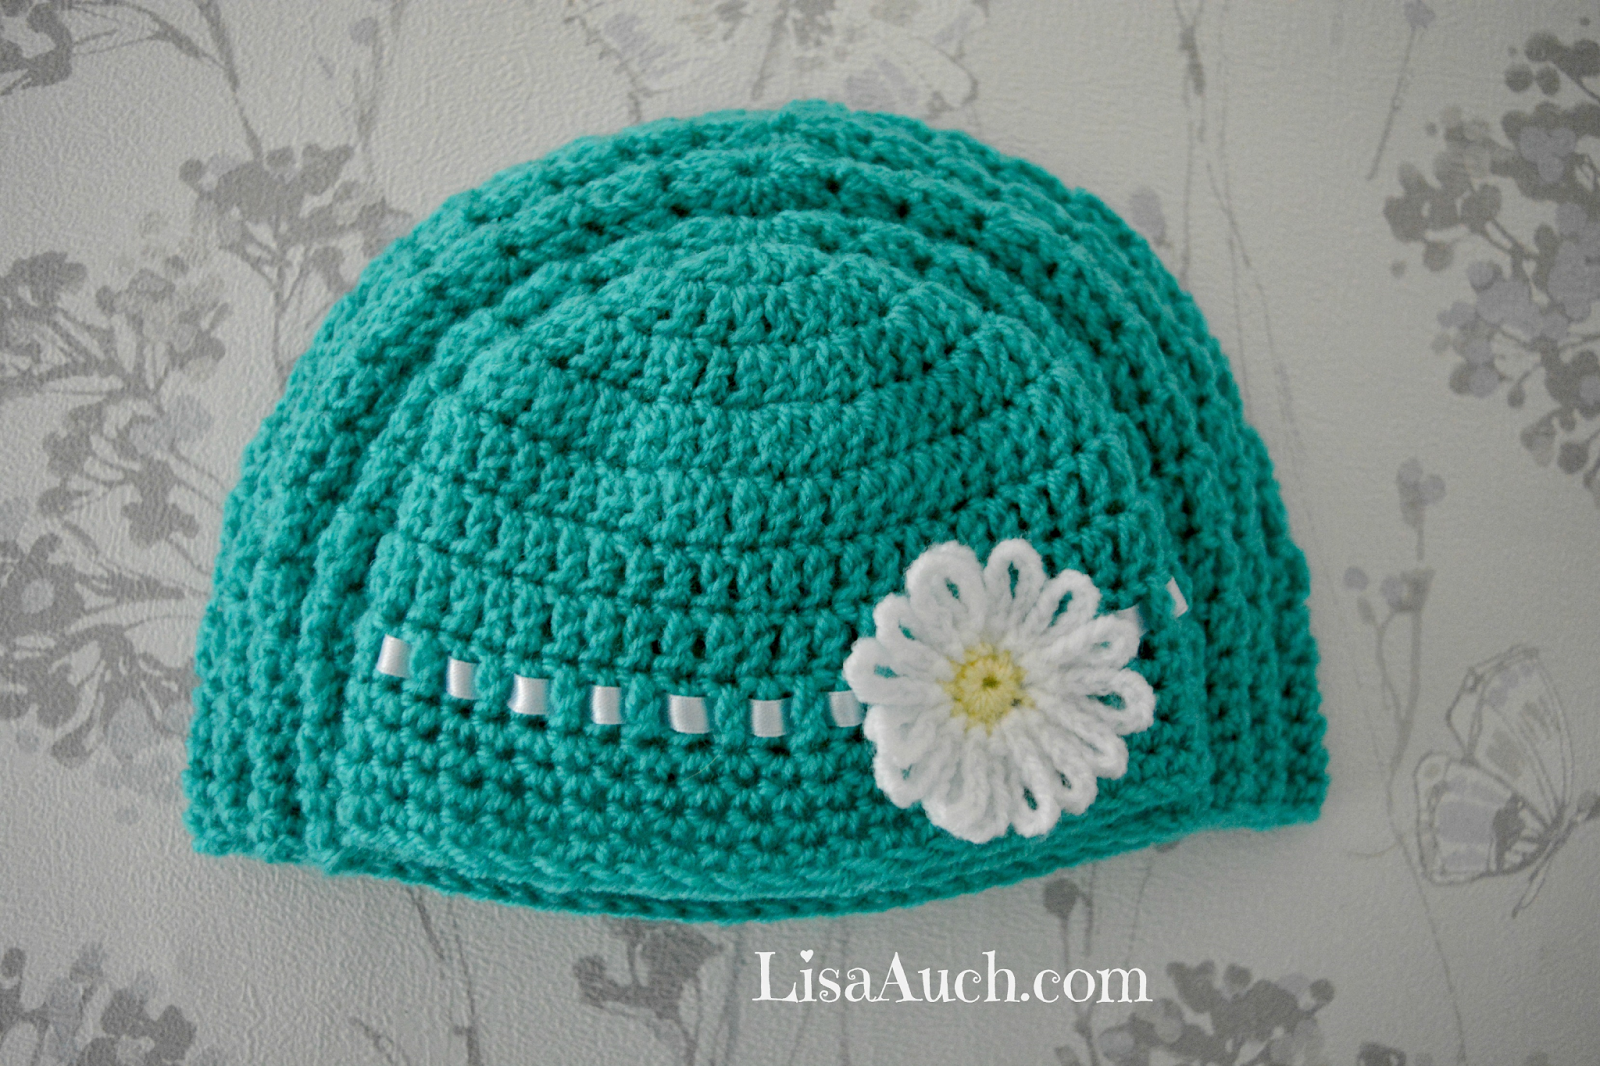 Free Crochet Patterns For Baby Toddler Hats : Free Crochet Patterns and Designs by LisaAuch: Double ...